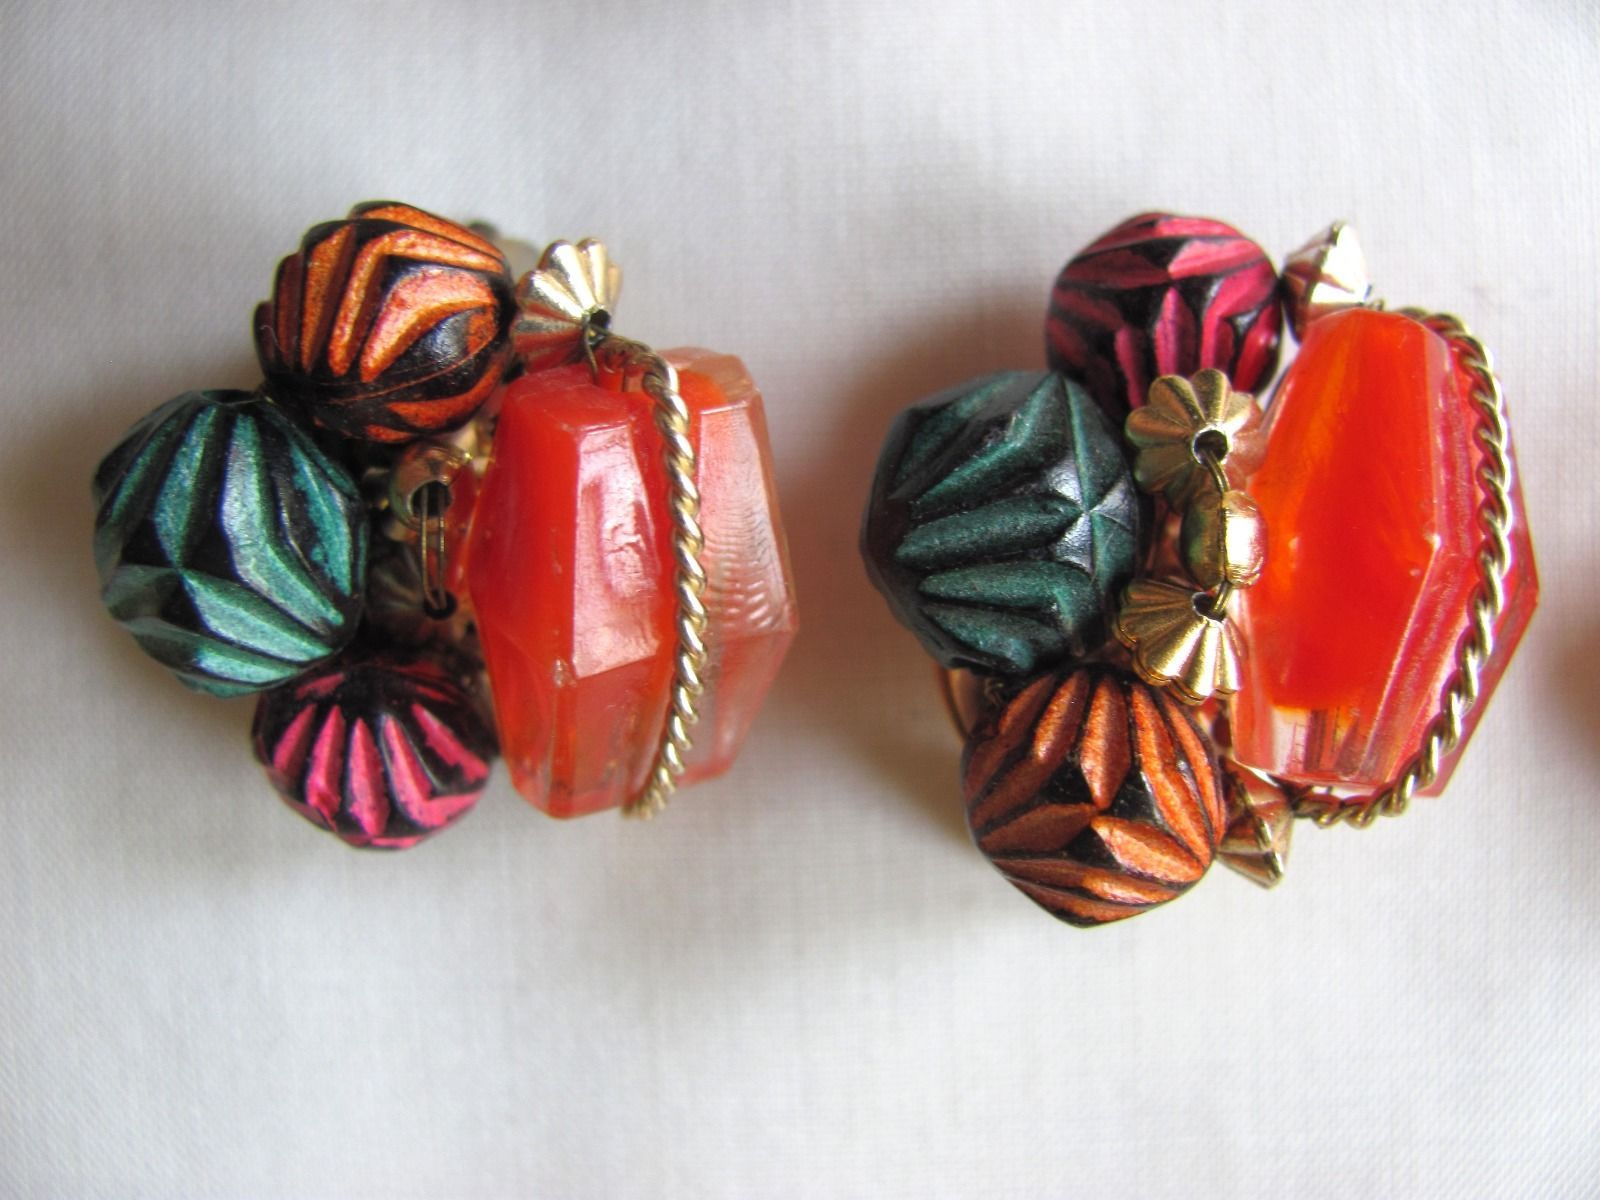 Lot of 7 pairs Hong Kong vintage cluster clip earrings! Beads/pearls/colorful! | eBay